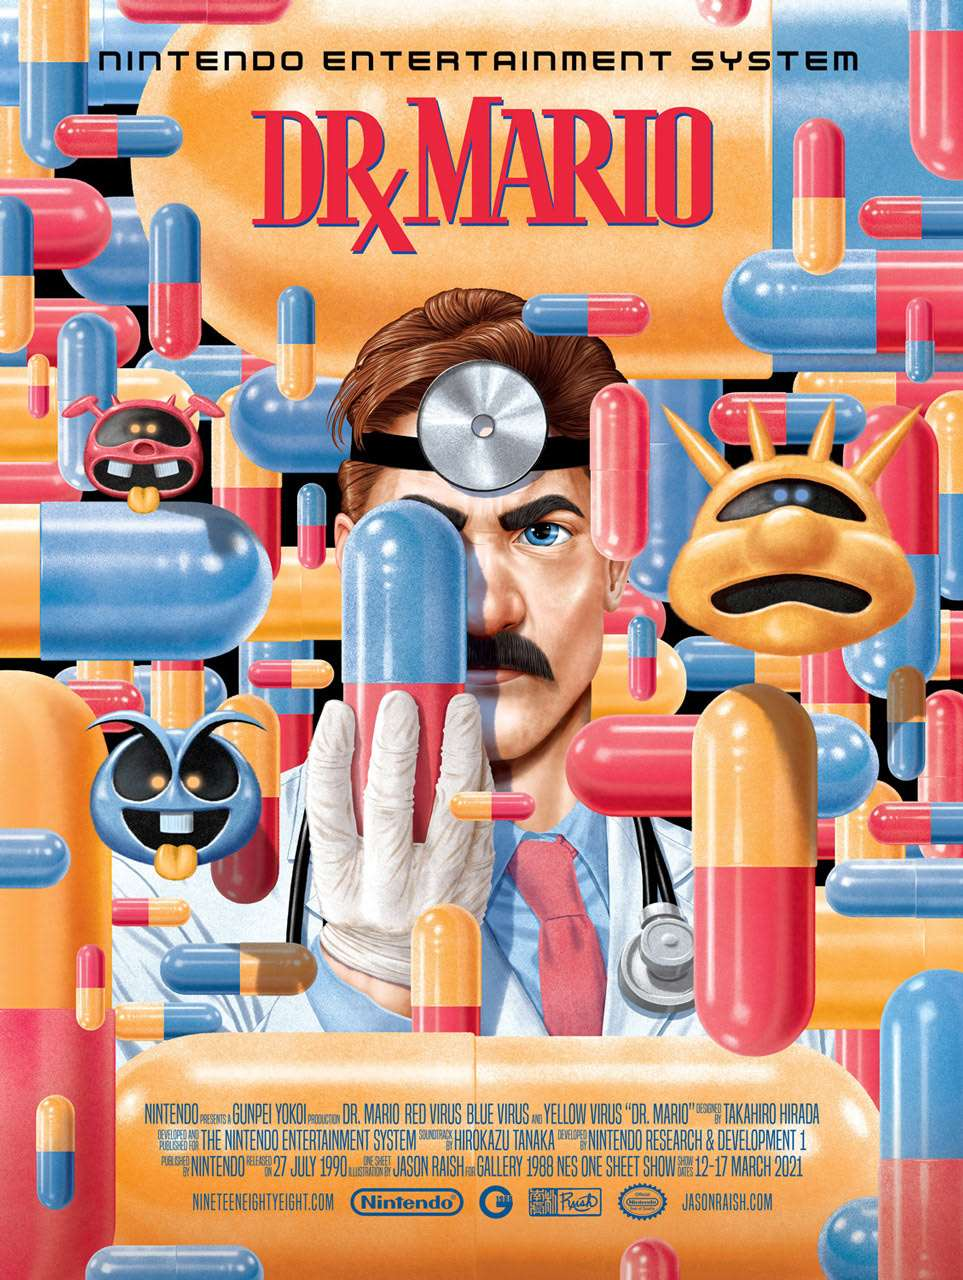 Jason Raish, Dr Mario 16x20″ poster releasing March 12th at noon California time for Gallery 1988′s NES One Sheet poster show where OG Nintendo games get the Movie Poster treatment.